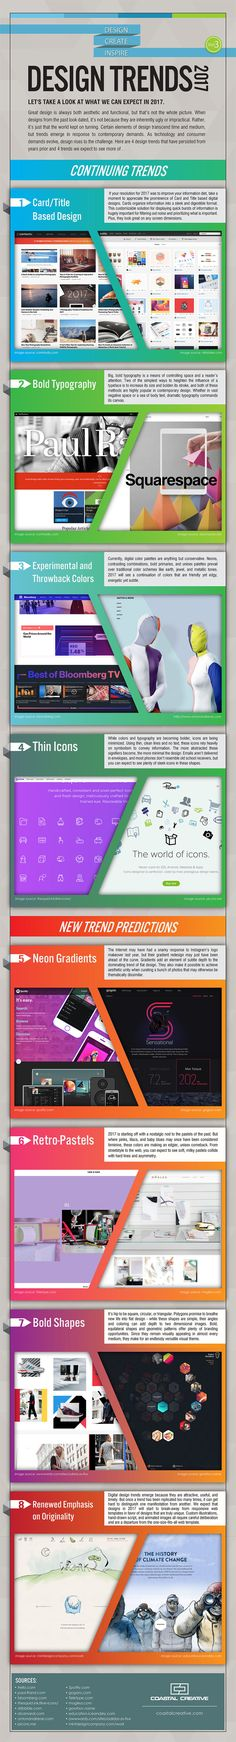 What Are 8 New And Continuing Design Trends? #infographic